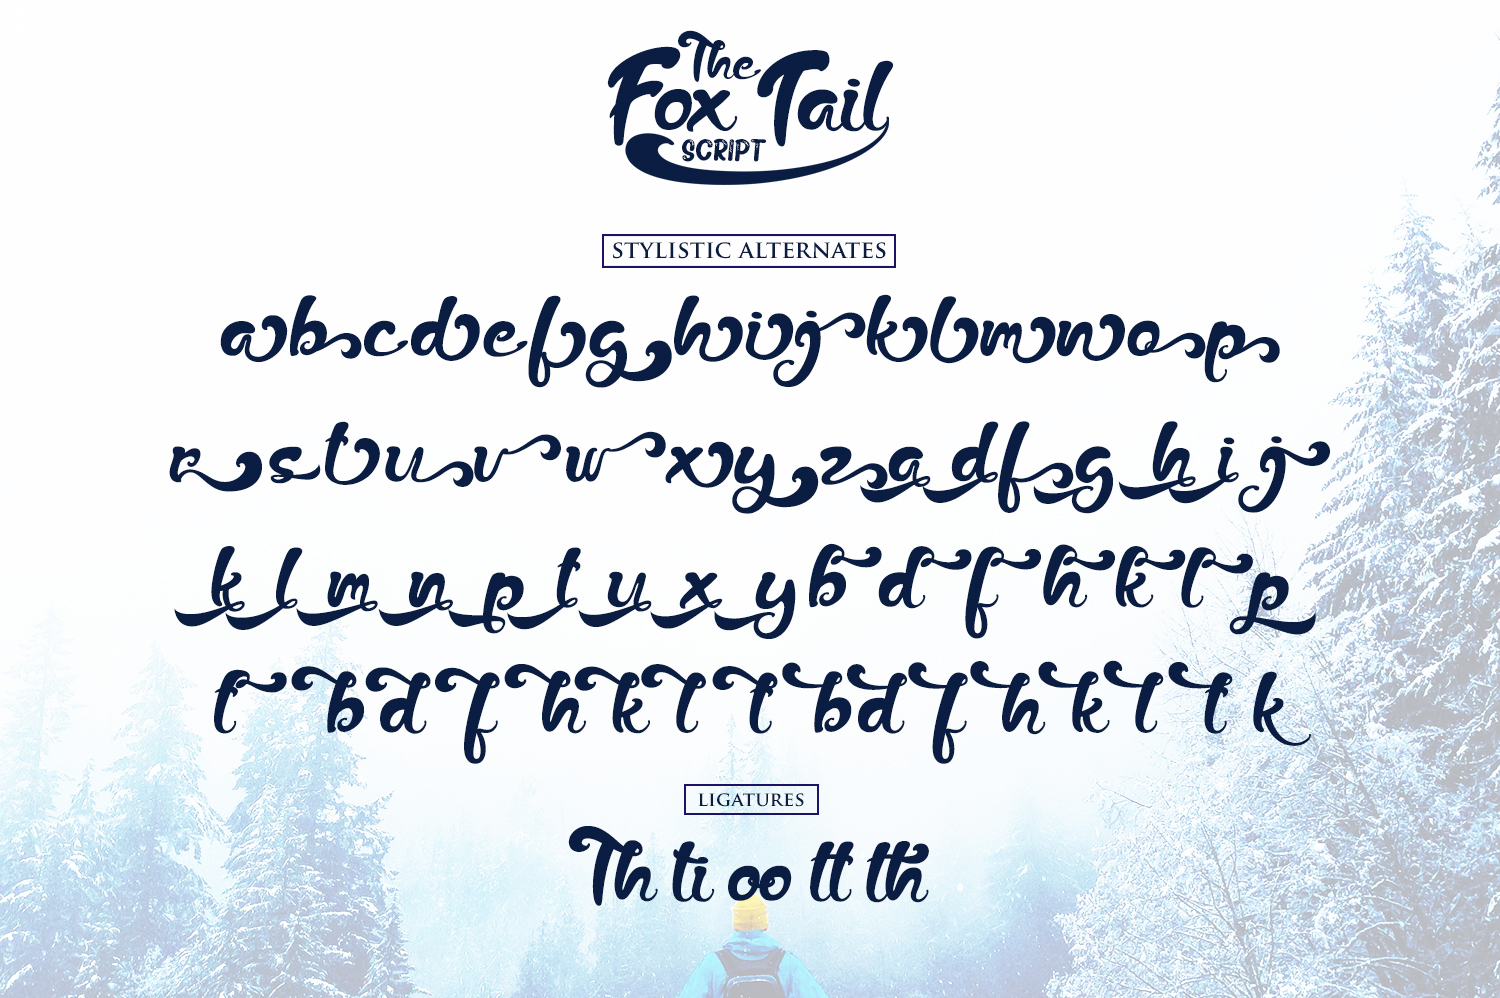 The Fox Tail Font By Din Studio Image 7